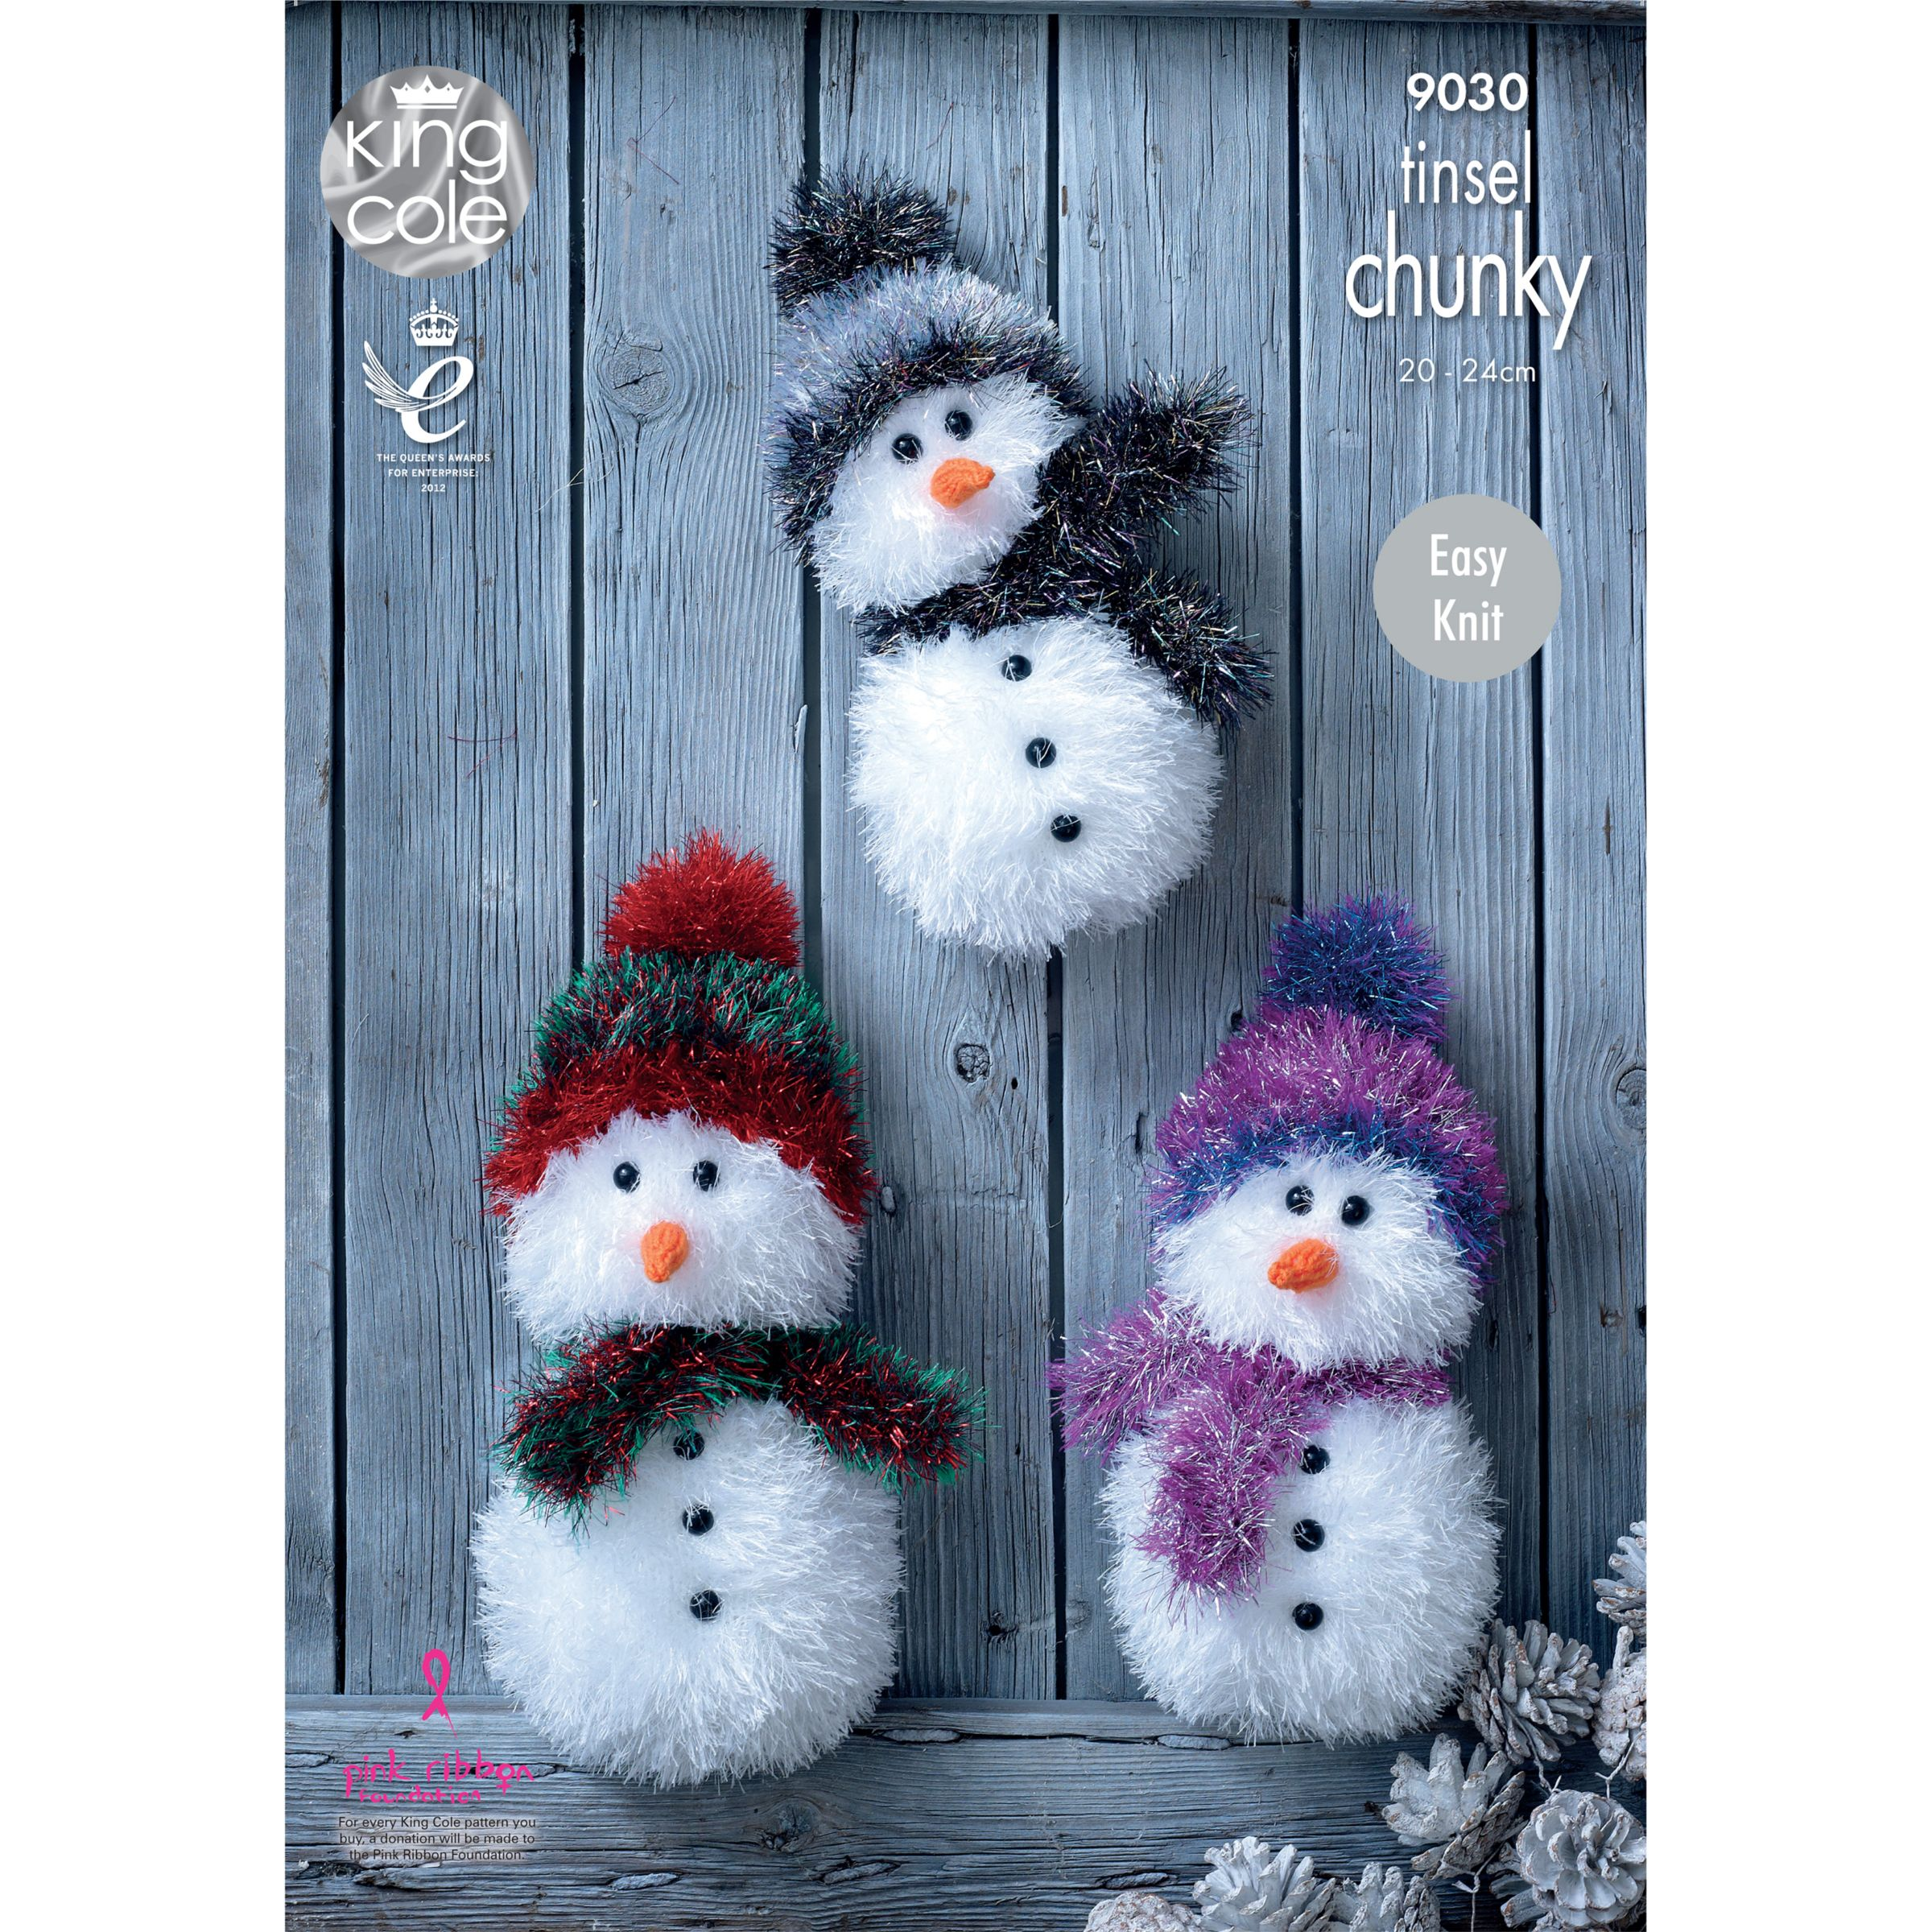 John Lewis Snowman Knitting Pattern : Knitting & Crochet Patterns John Lewis